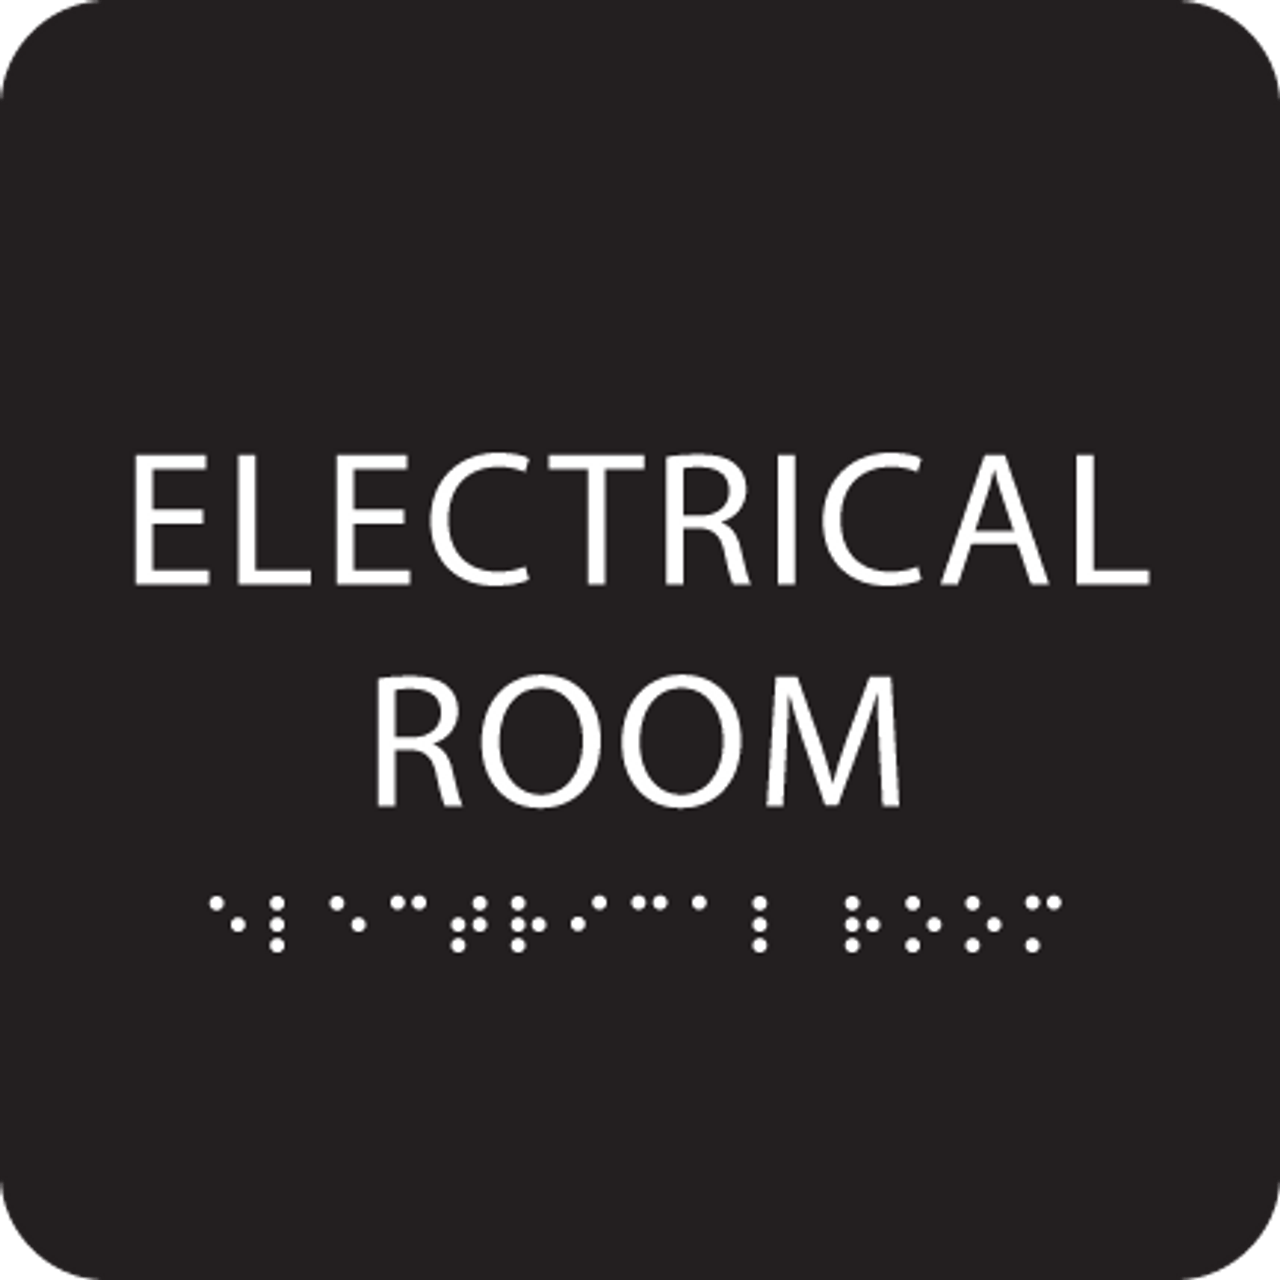 Black Tactile Electrical Room Sign